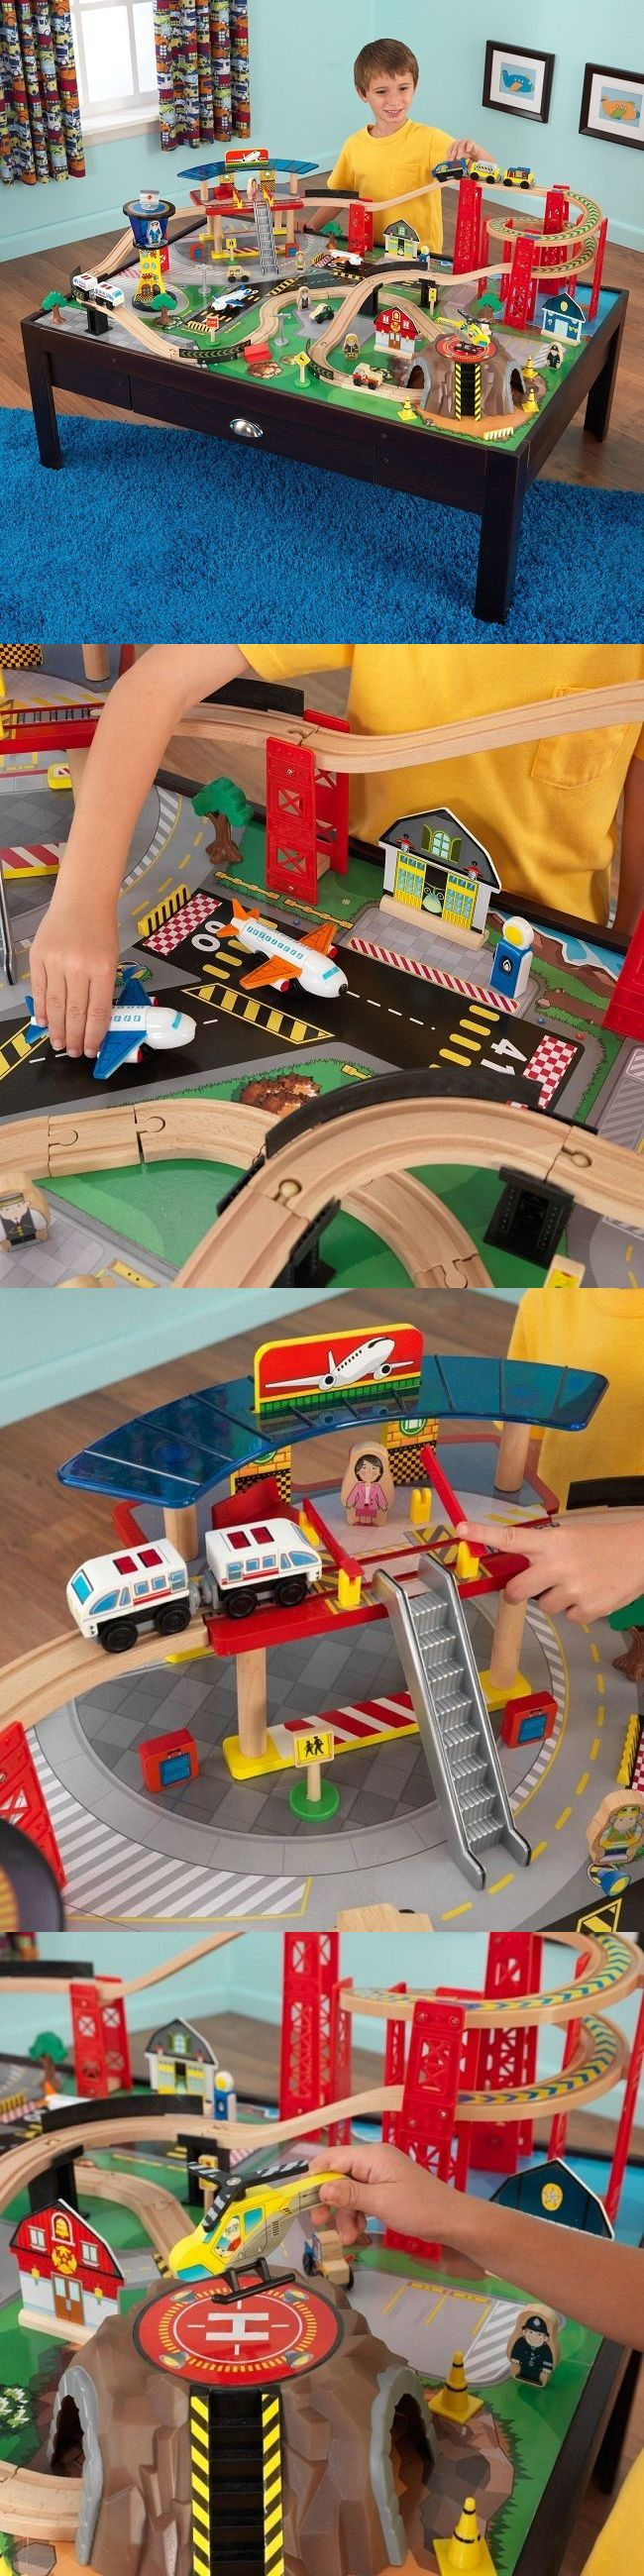 Brio Compatible 16517: Toy Train Table Top Toys For Kid Wooden Set Airport Boy 100 Piece Sturdy Station -> BUY IT NOW ONLY: $168 on eBay!